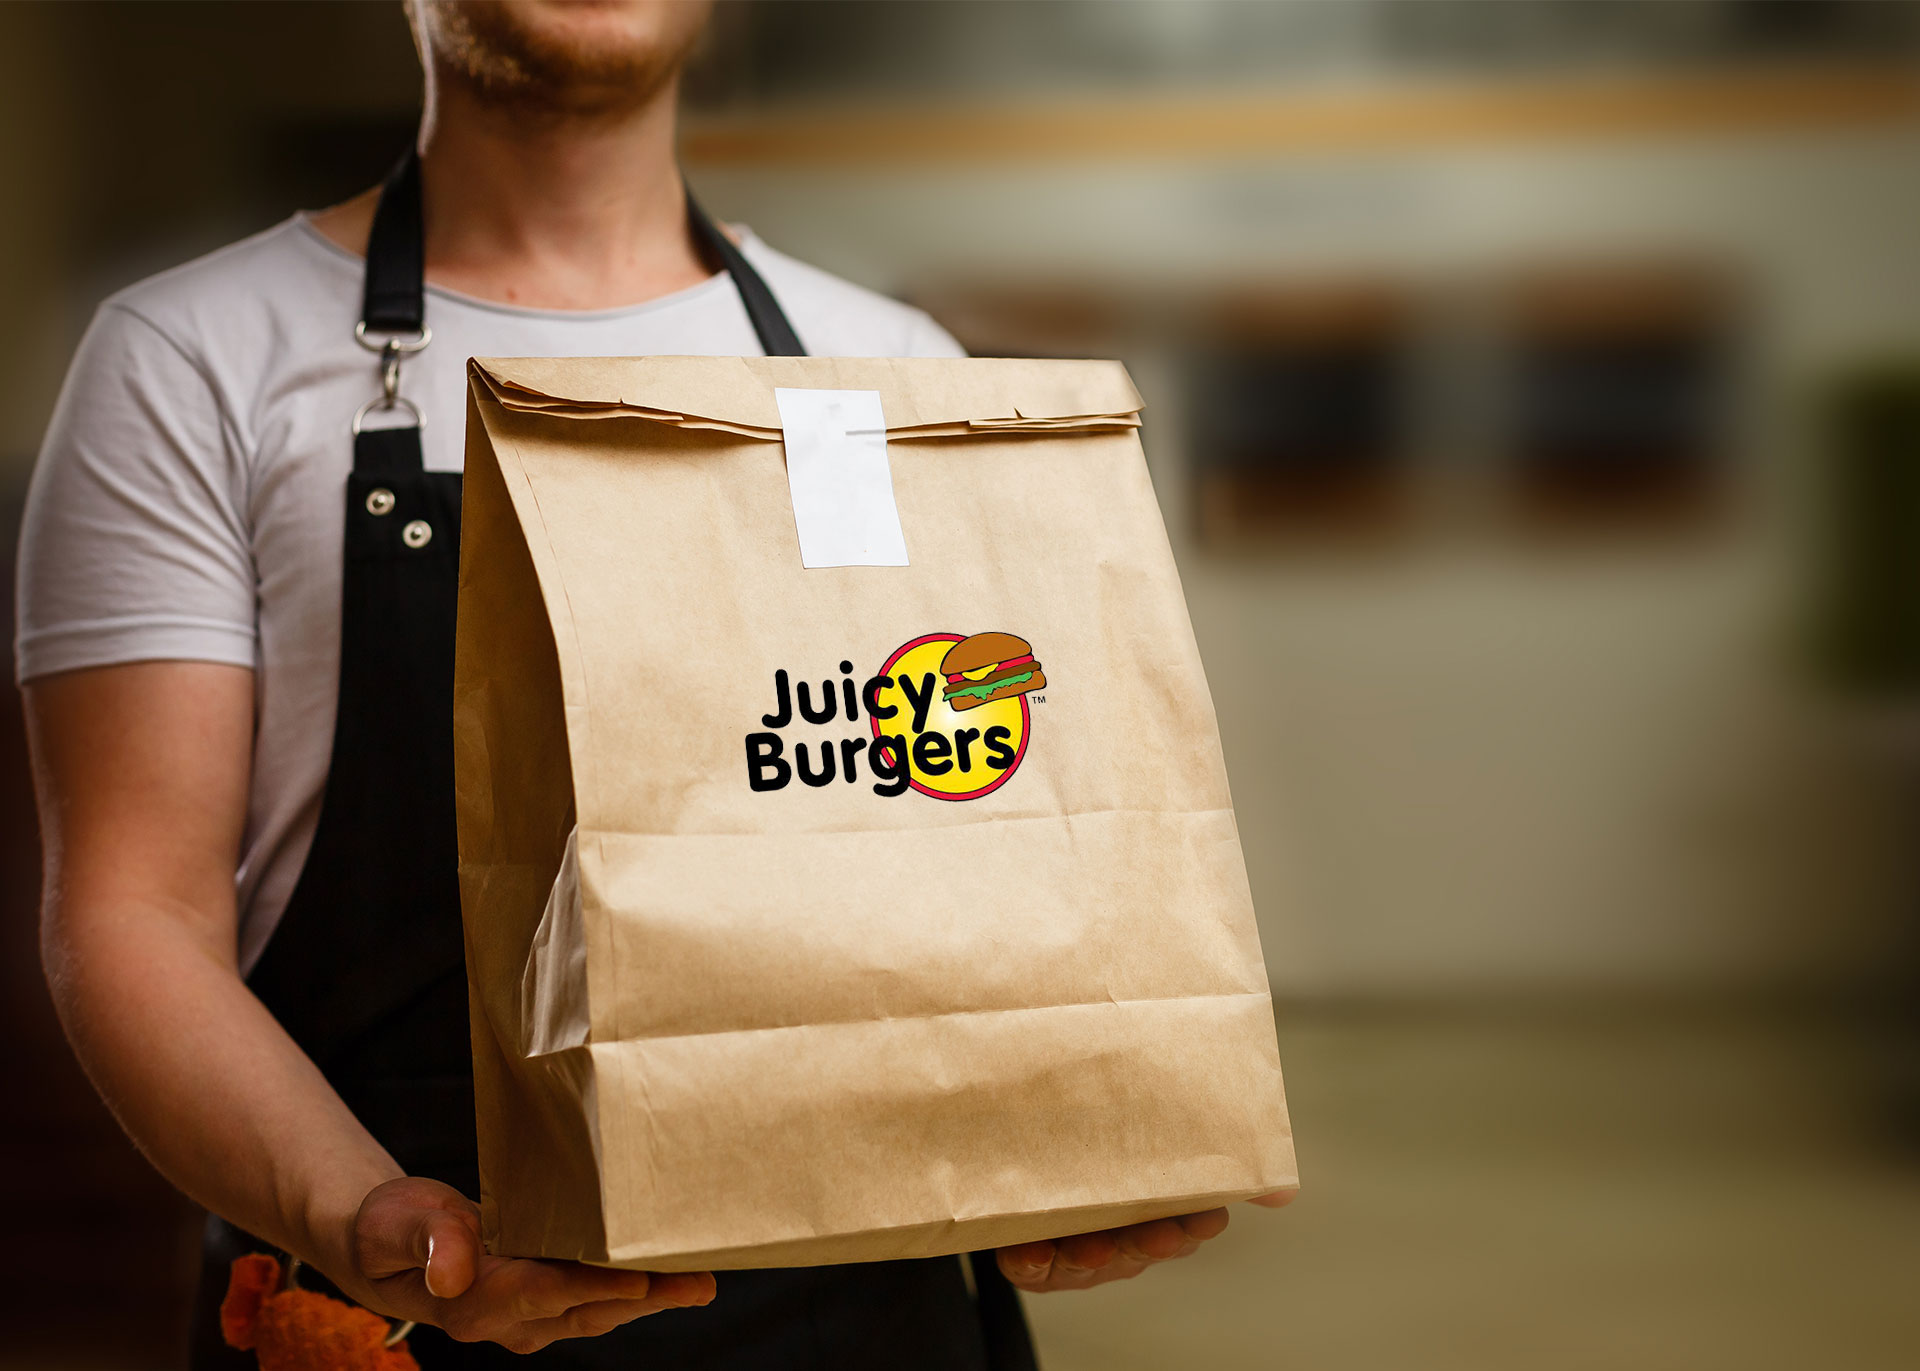 Server holding a brown paper bag with Juicy Burgers branding